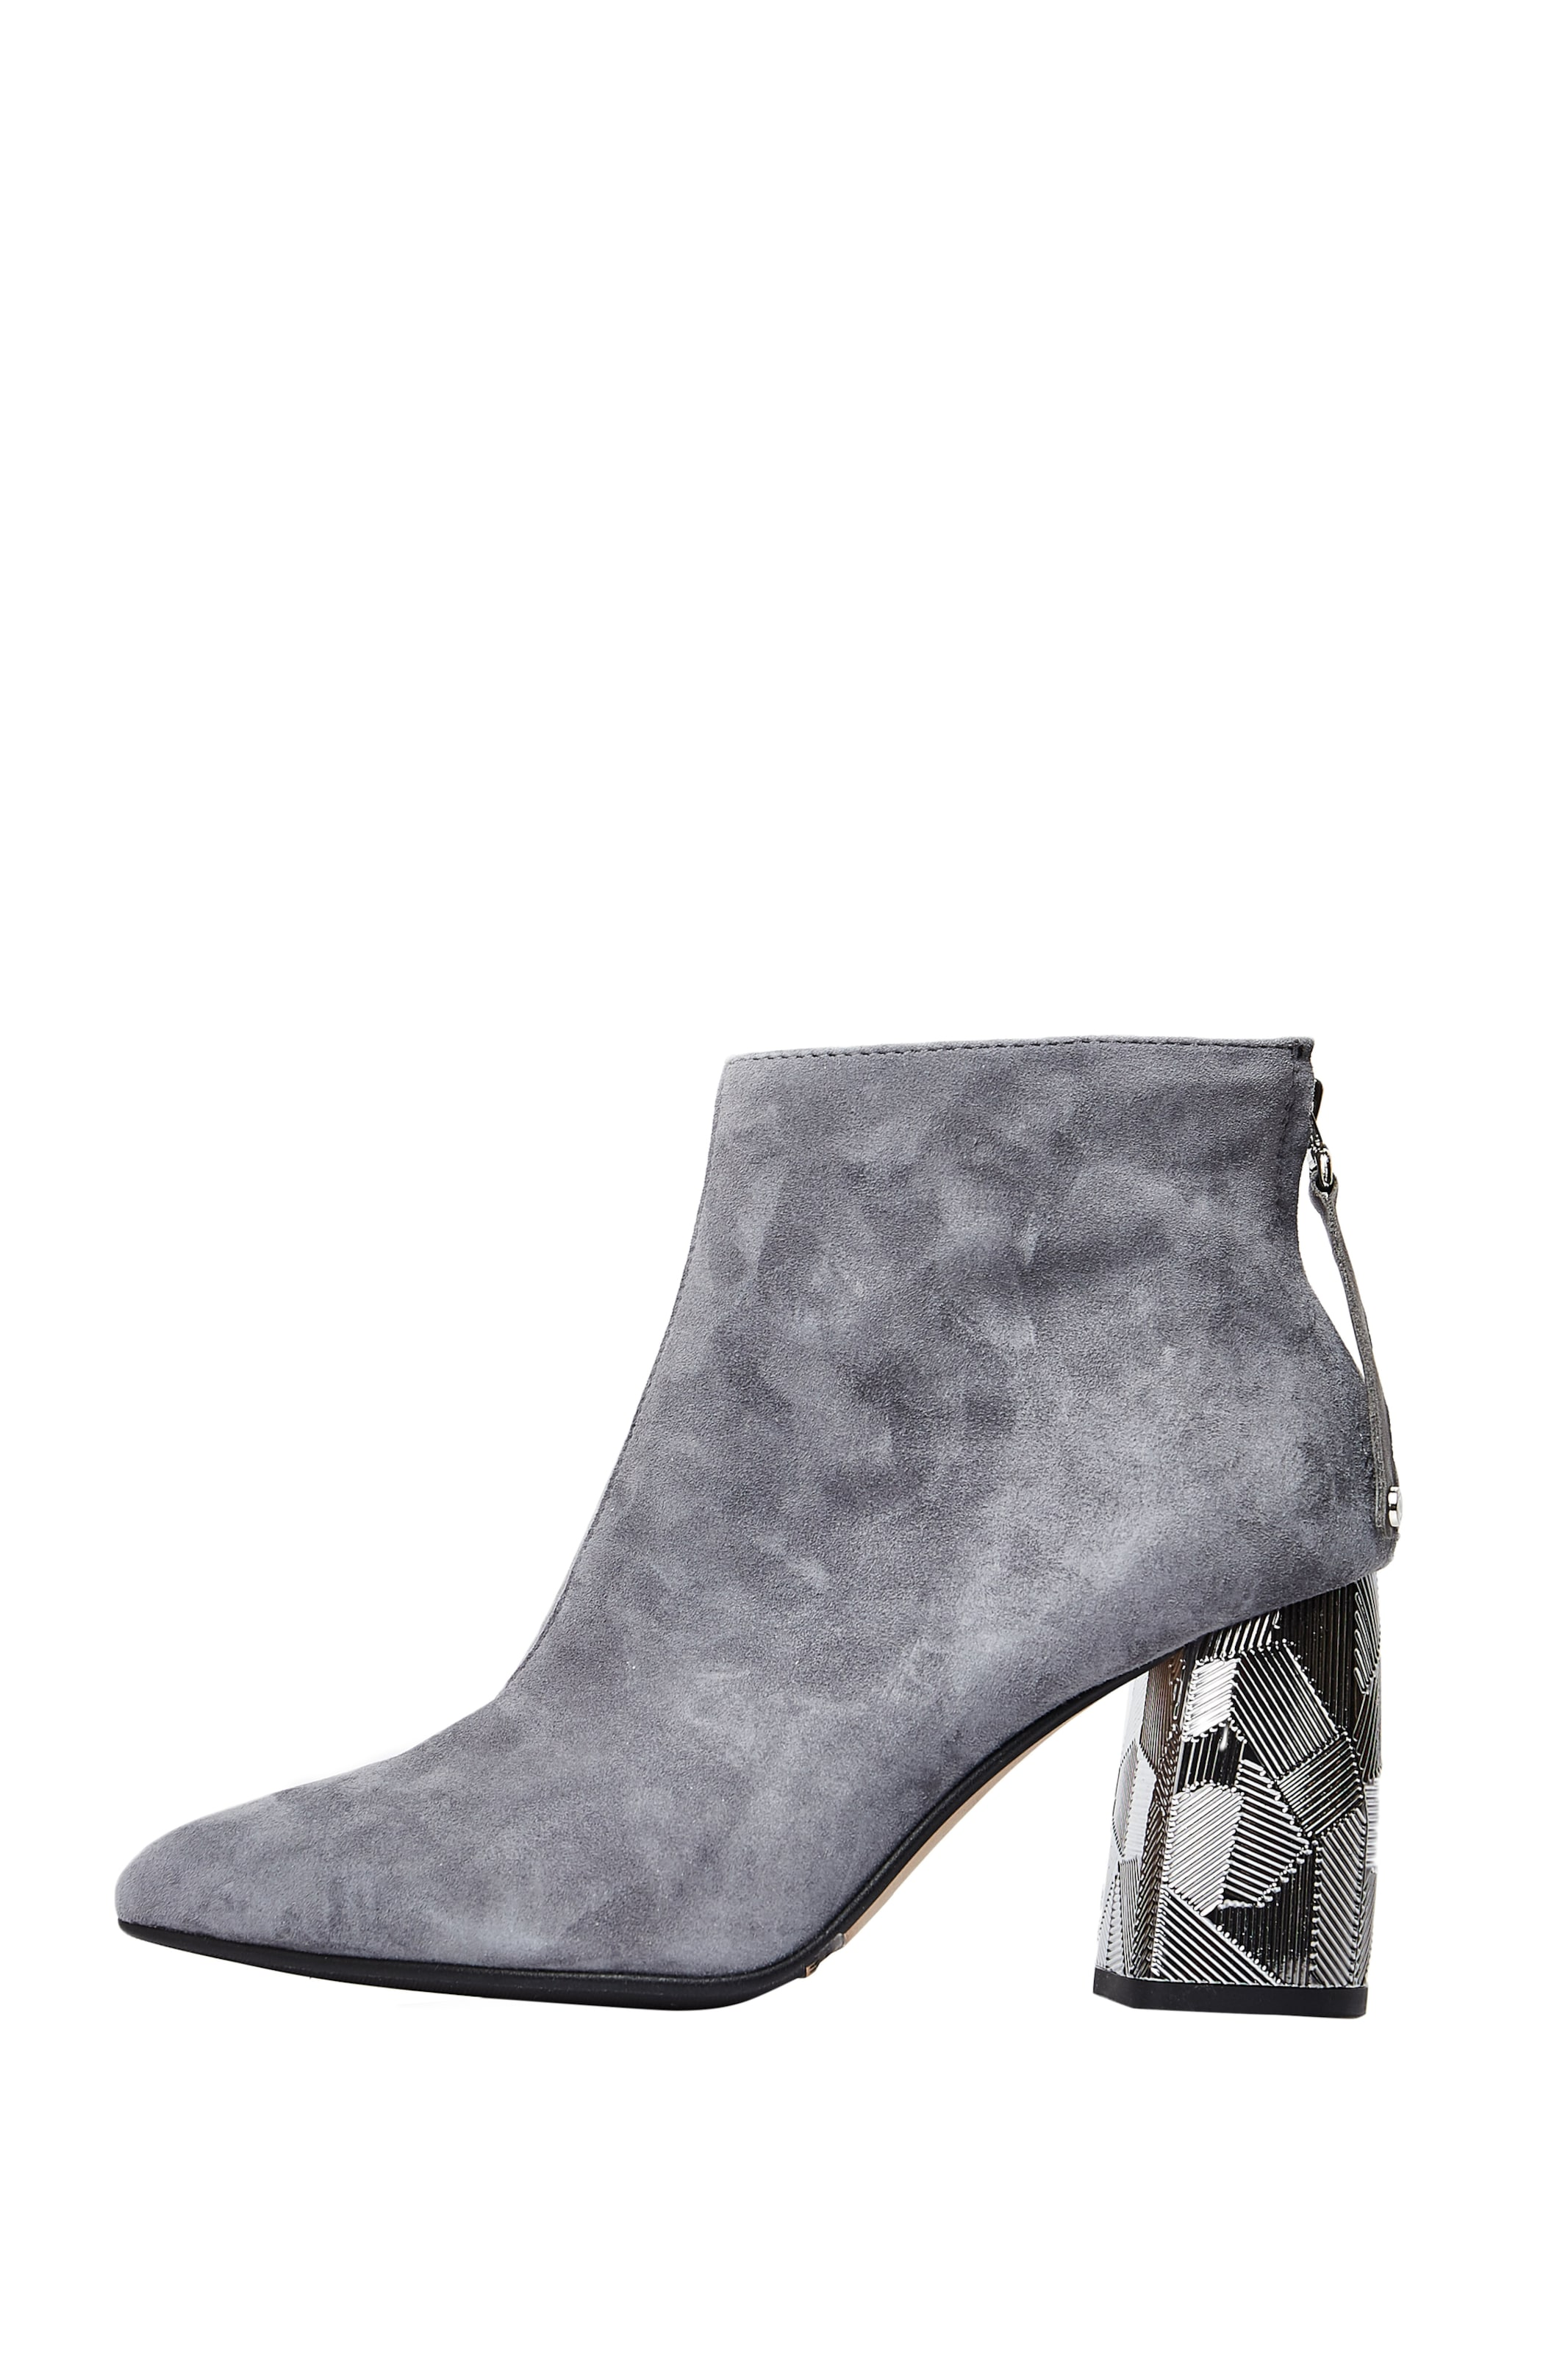 Bottines Risa Bottines Gris En En Risa wX80OknP